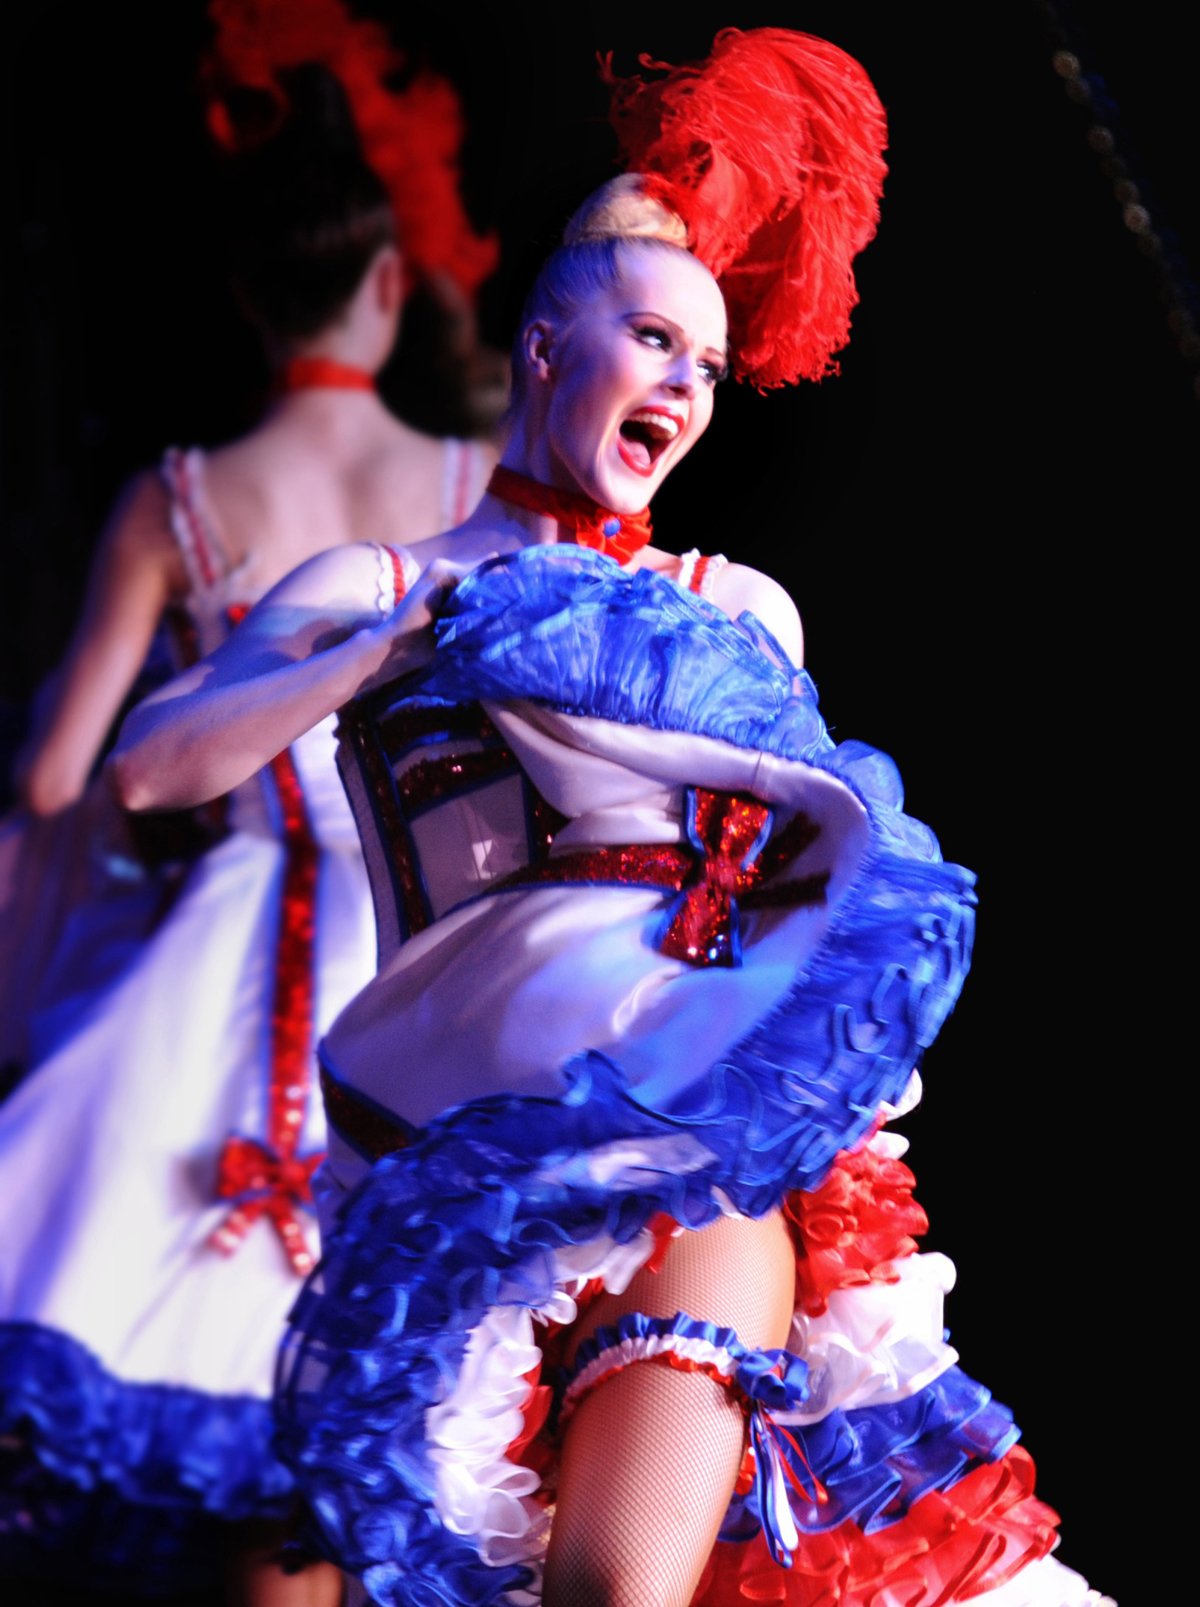 french-cancan-danseuse-moulin-rouge-s-bertrand